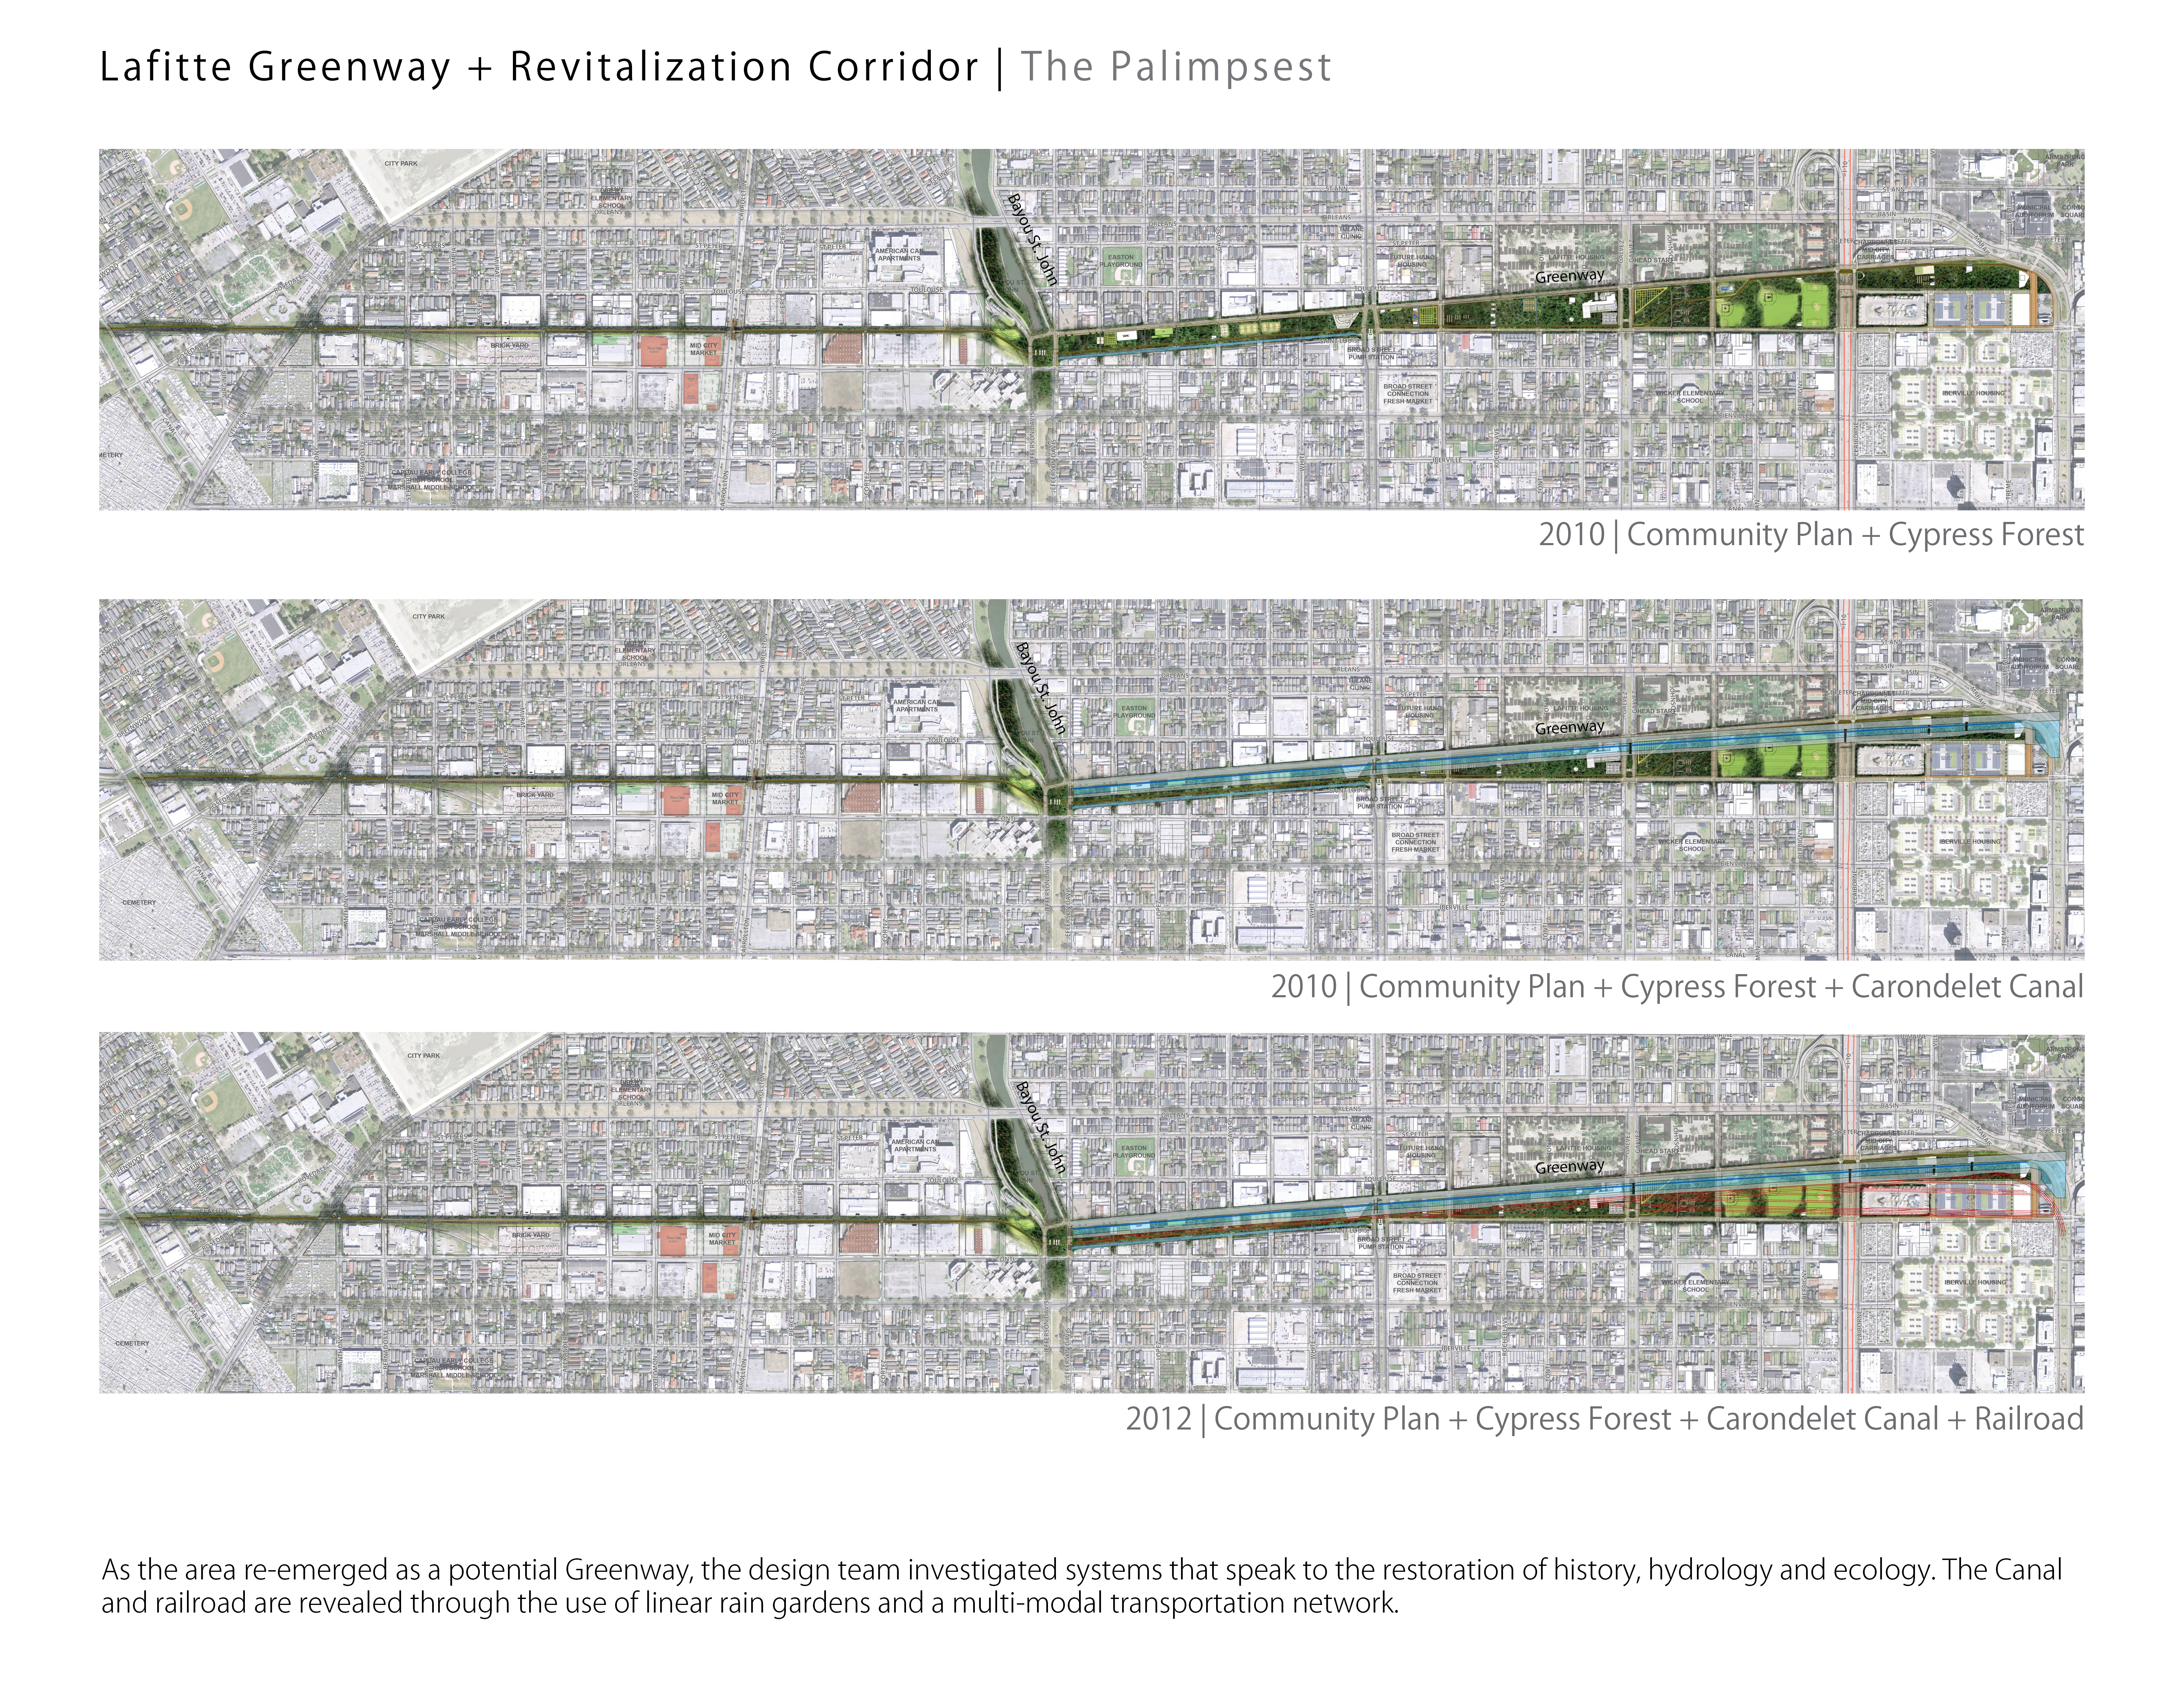 Lafitte Greenway Revitalization Corridor Linking New Orleans